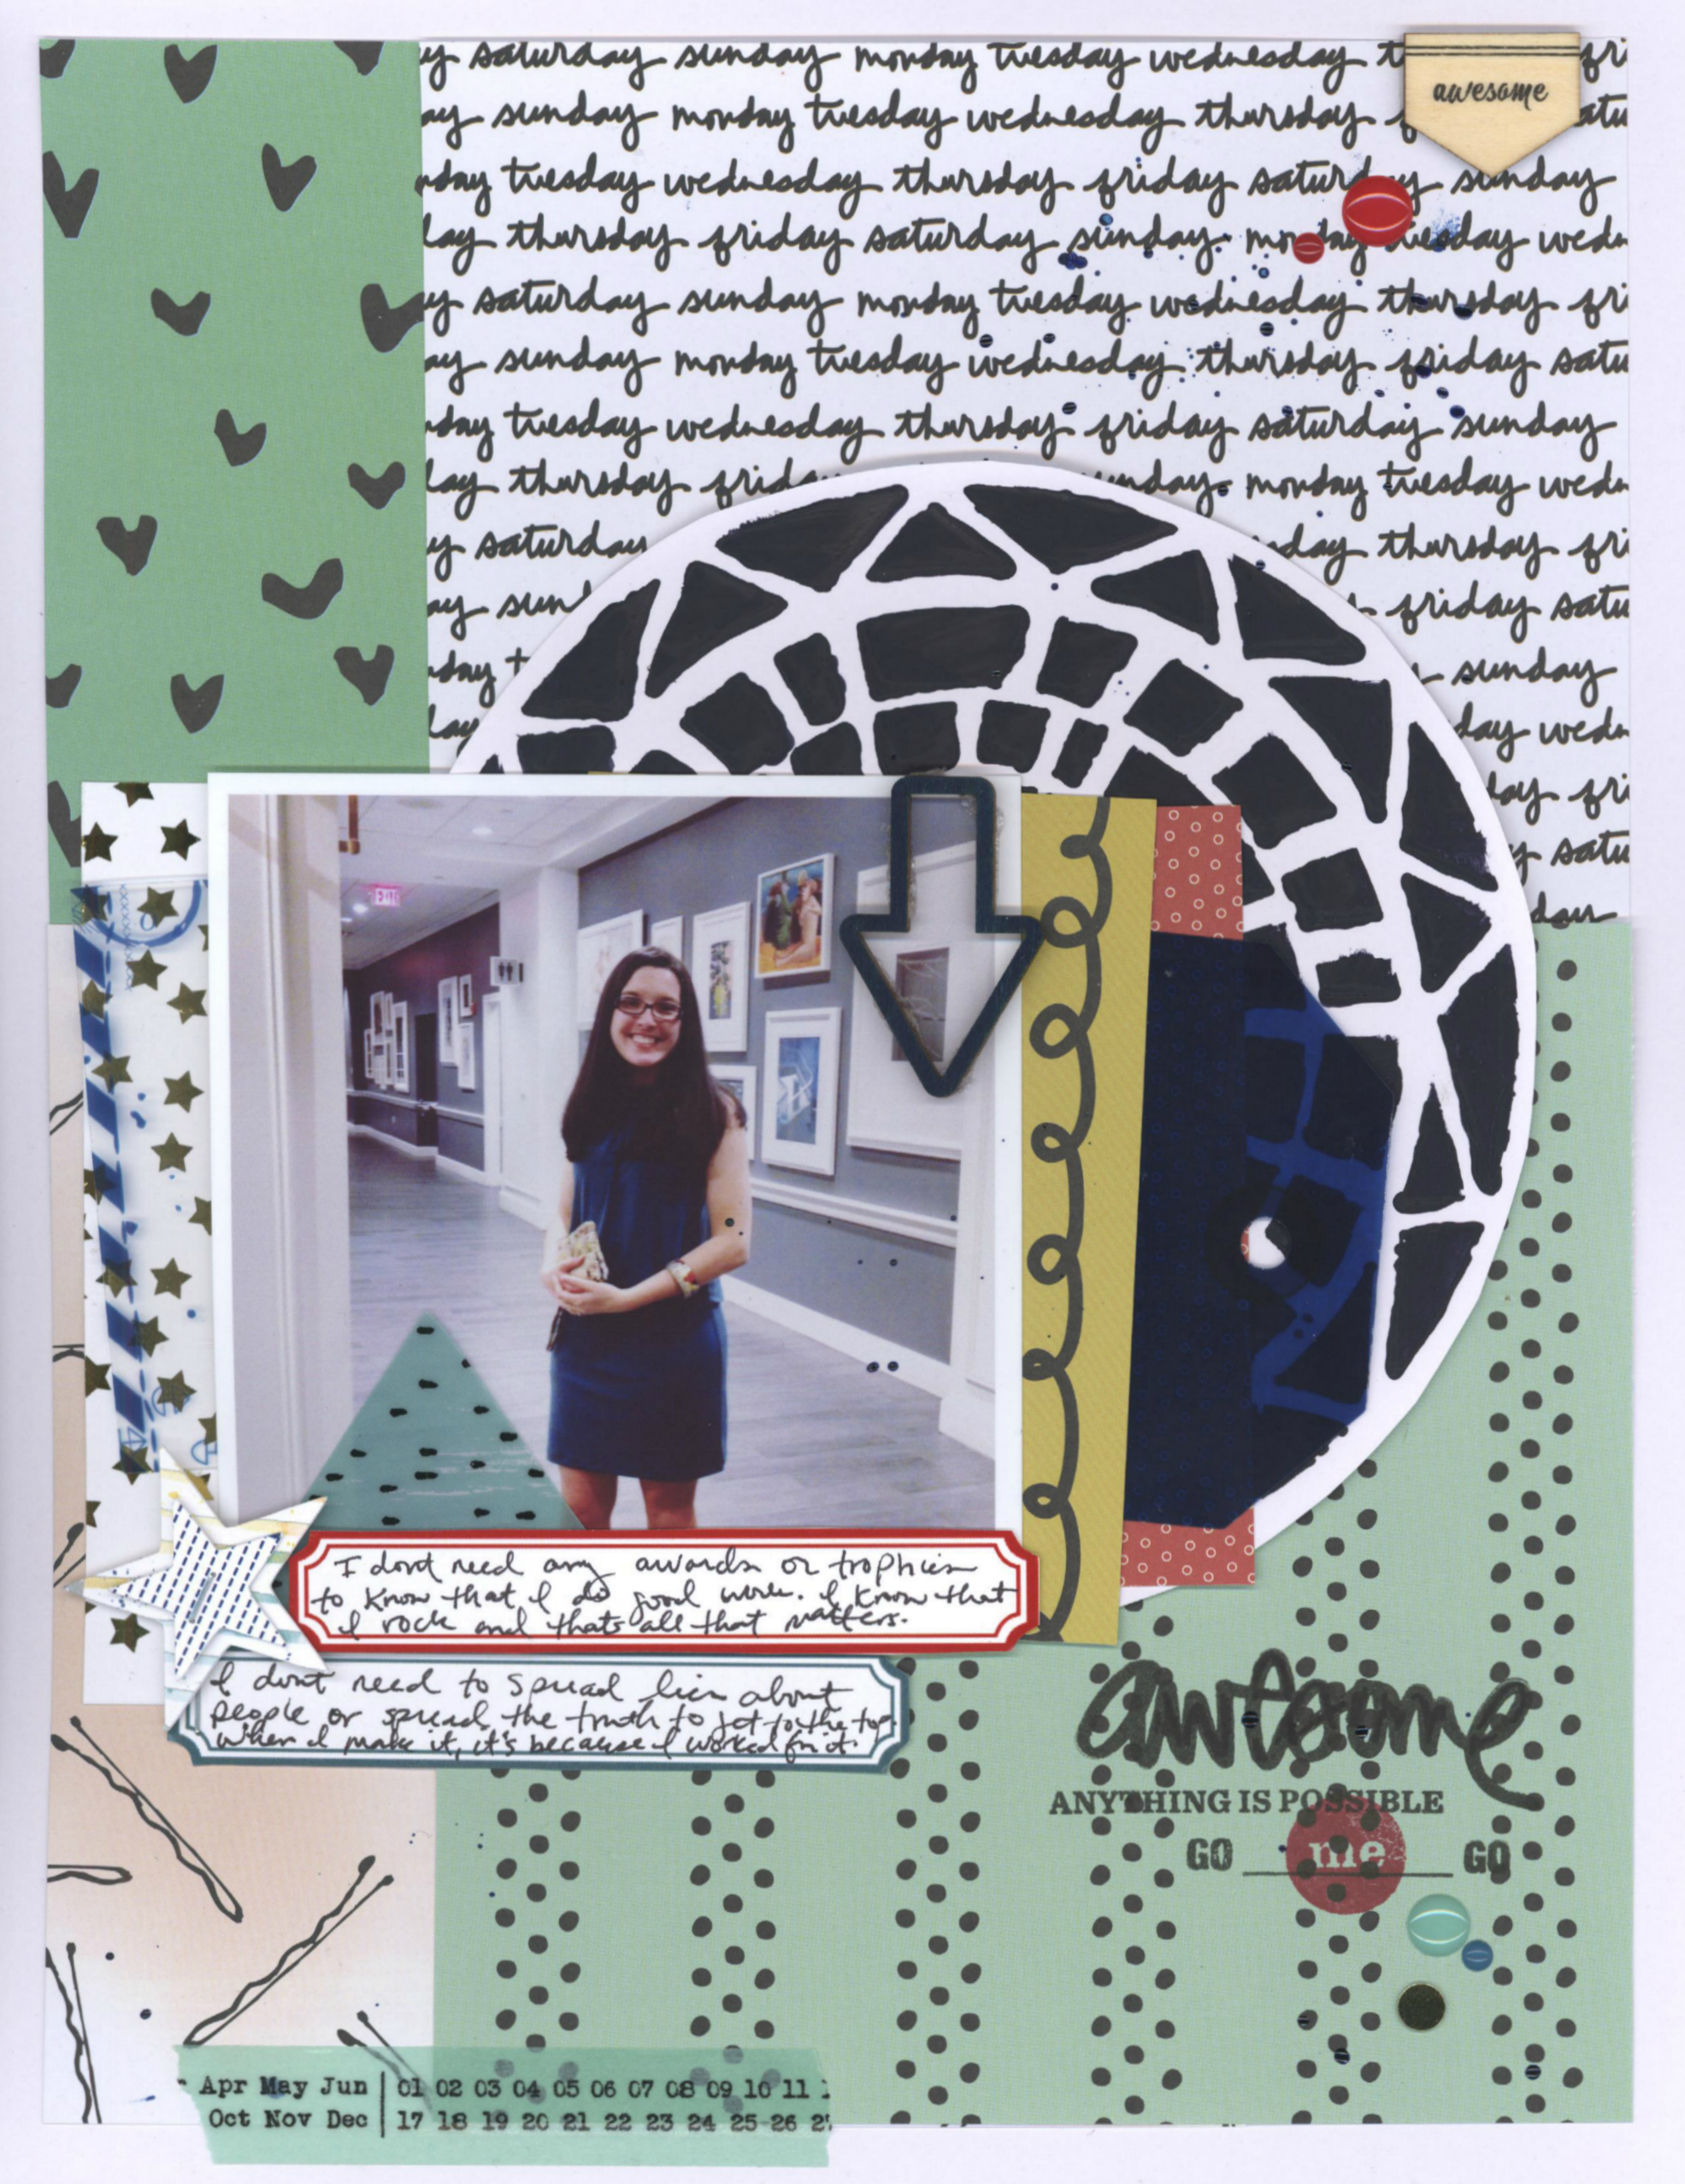 awesome_becky higgins project life_pretty little studio_The crafter's workshop_nicole martel_layout_ali edwards storykit_stamping